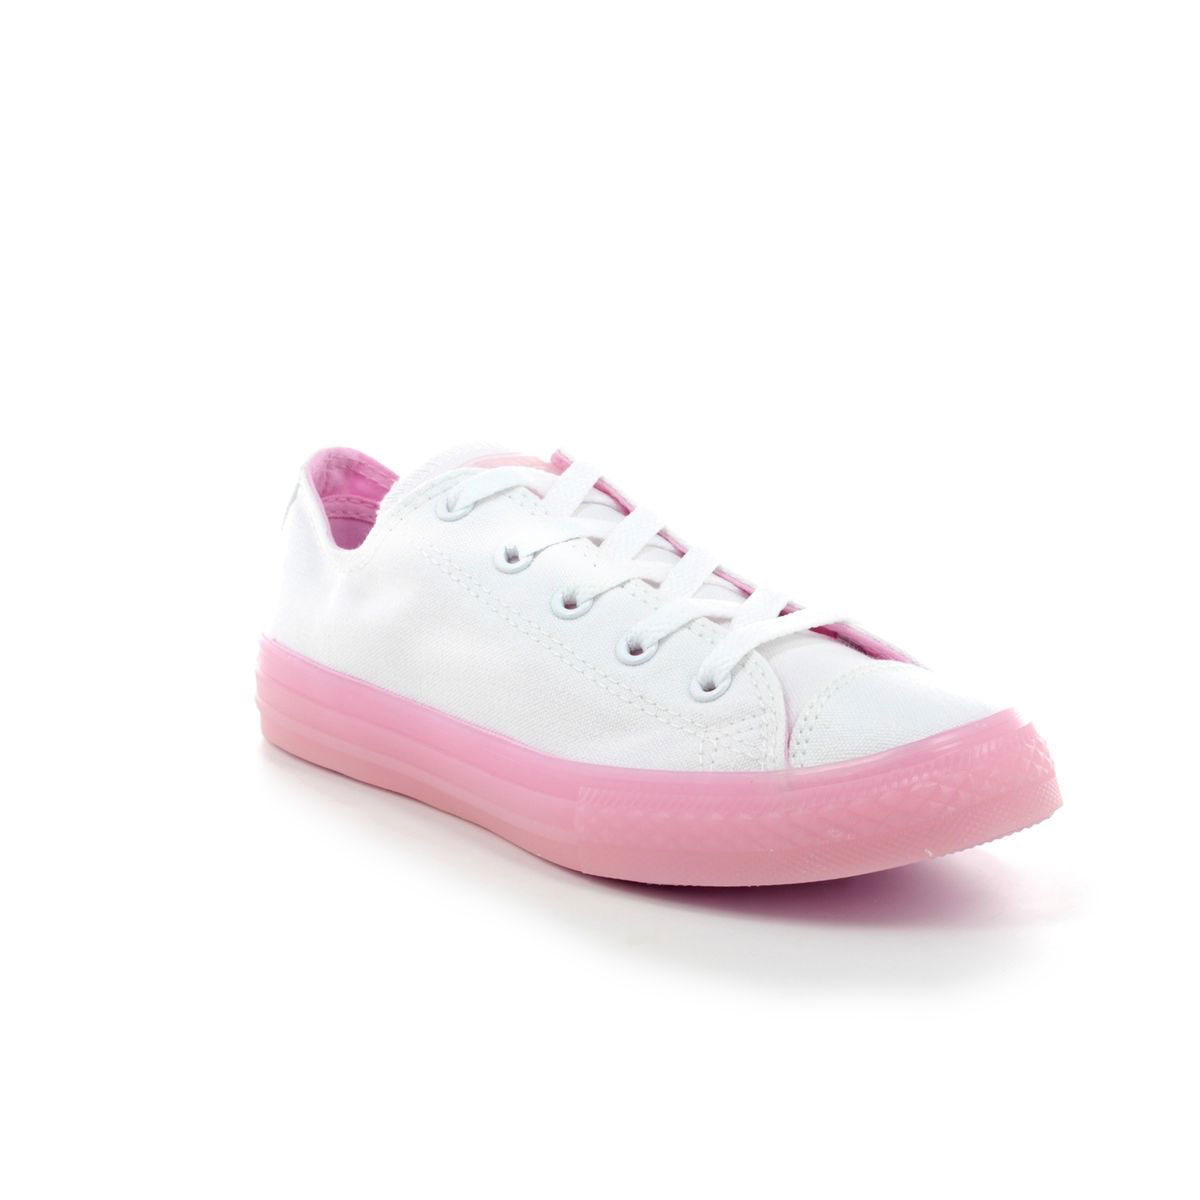 converse white & pink all star ox trainers